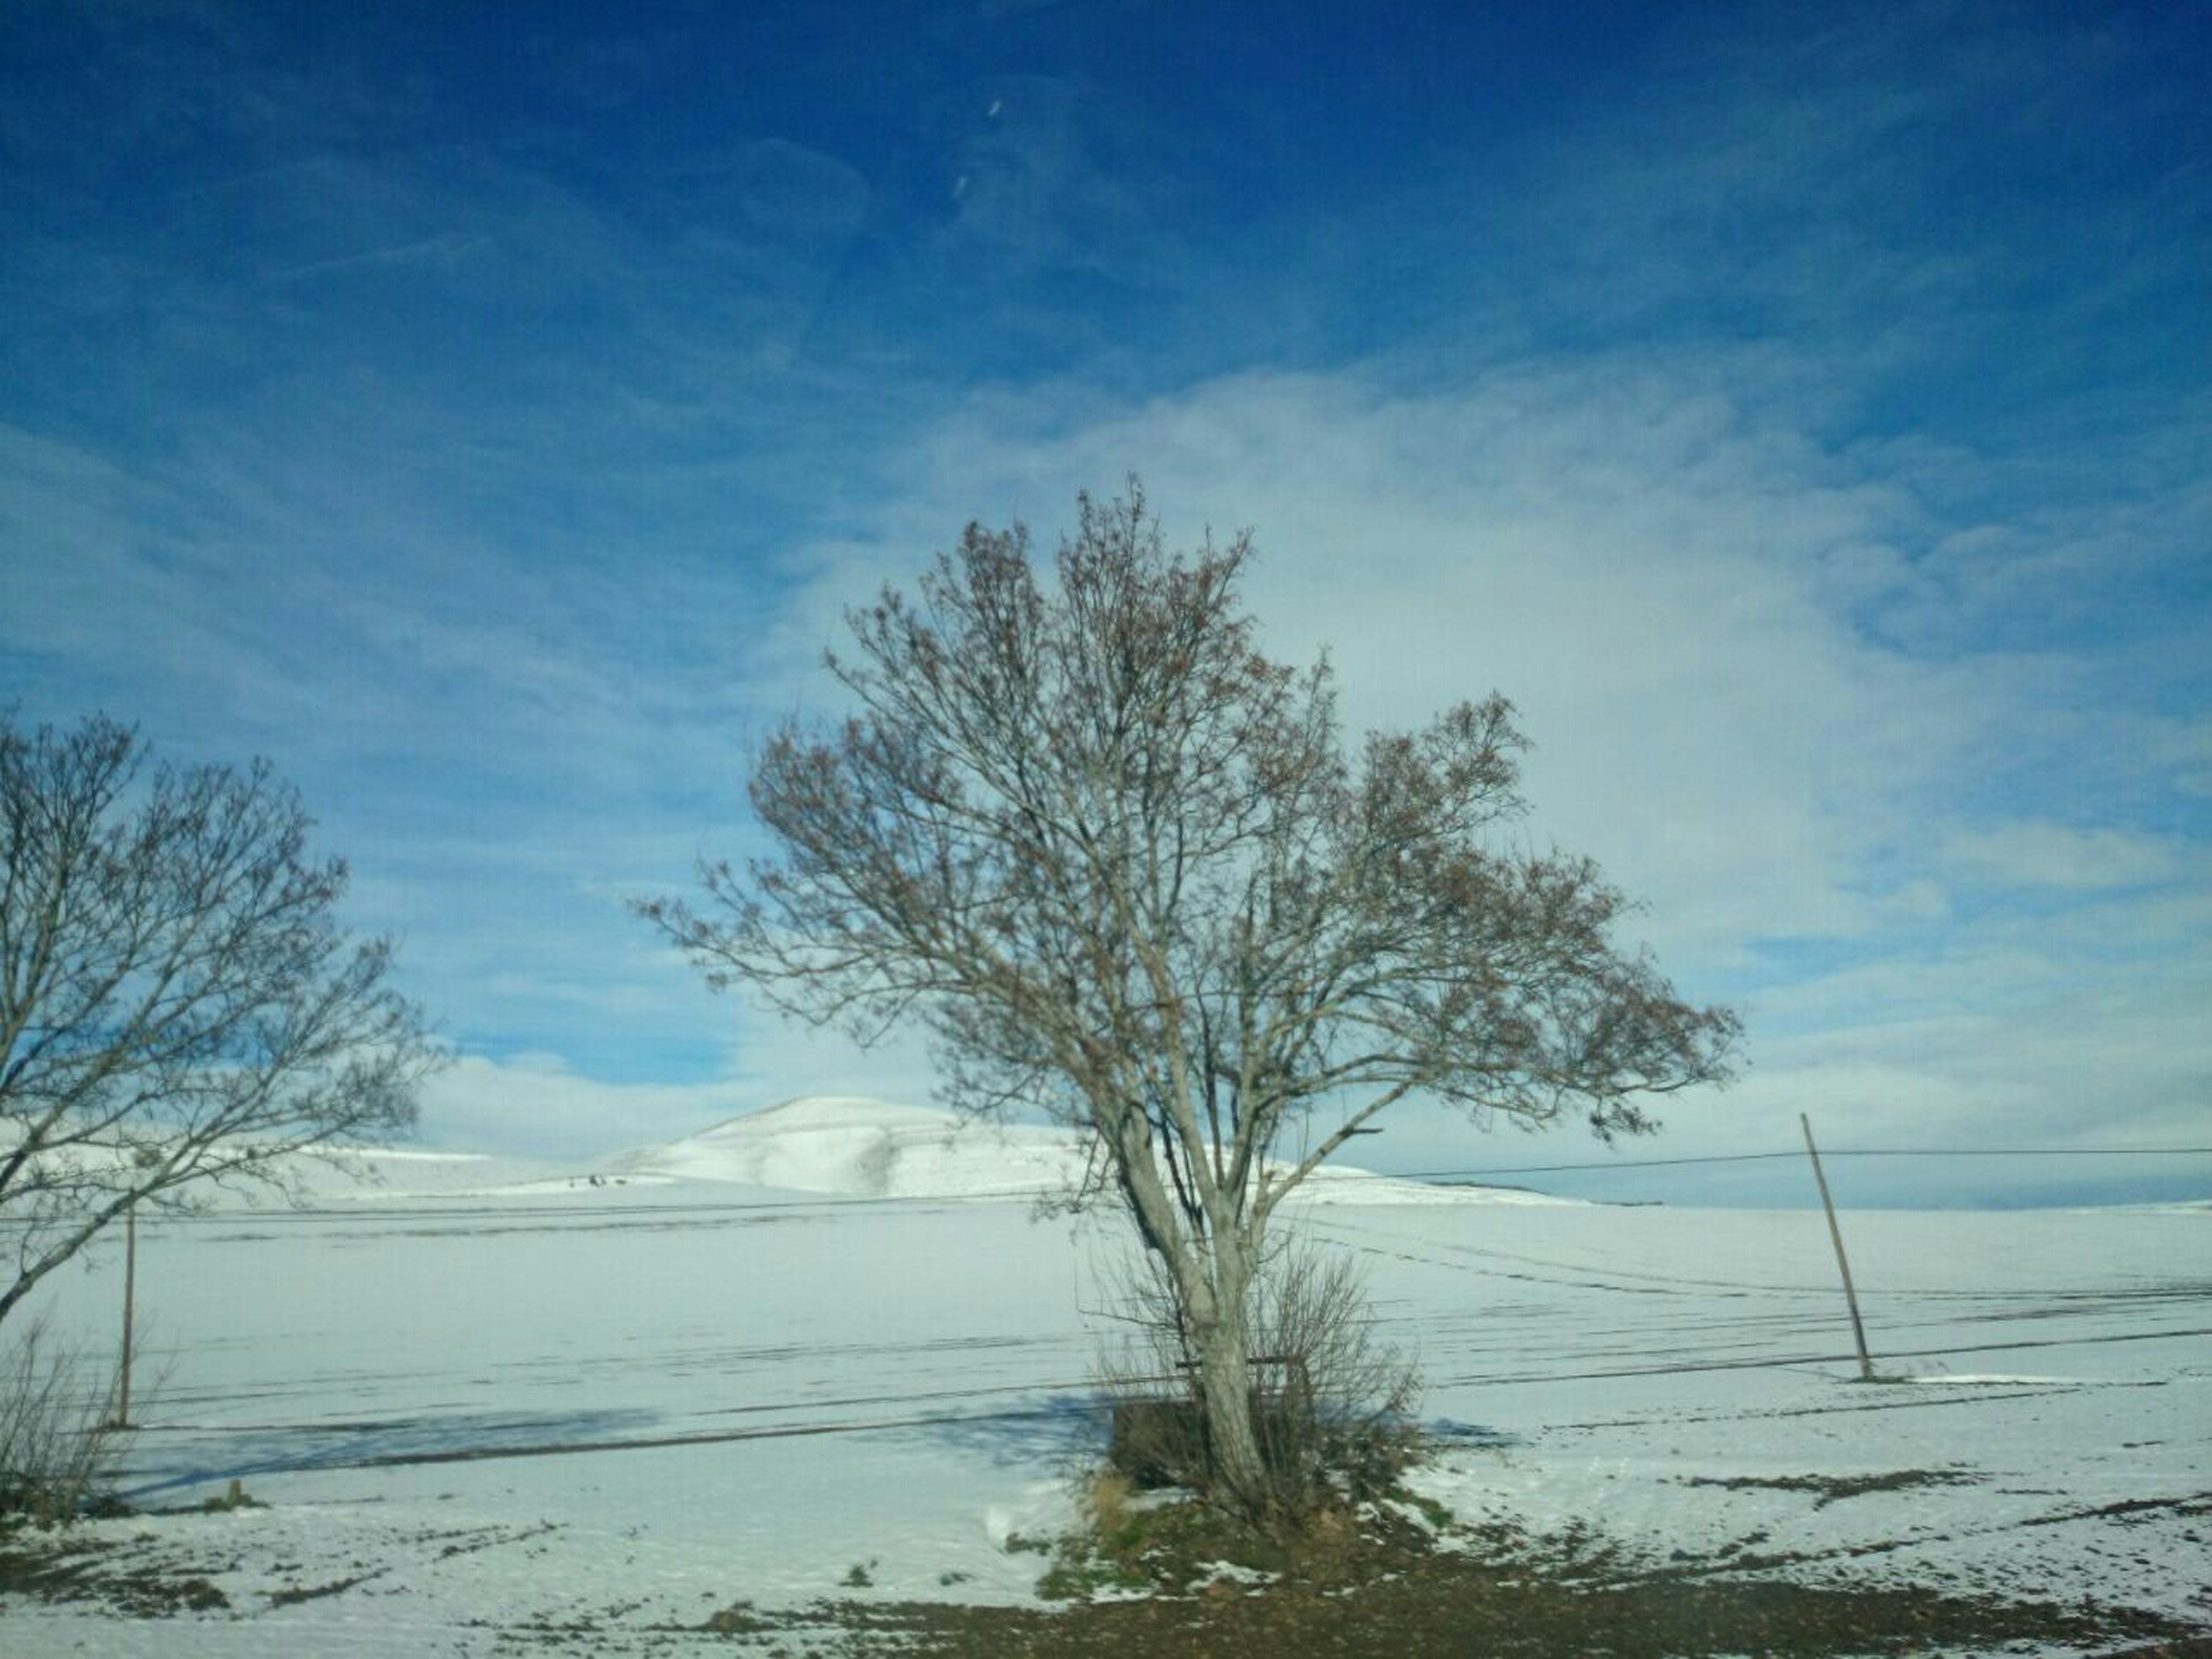 sky, tranquility, tranquil scene, water, scenics, tree, beauty in nature, bare tree, nature, blue, cloud - sky, cloud, branch, day, outdoors, no people, landscape, non-urban scene, lake, idyllic